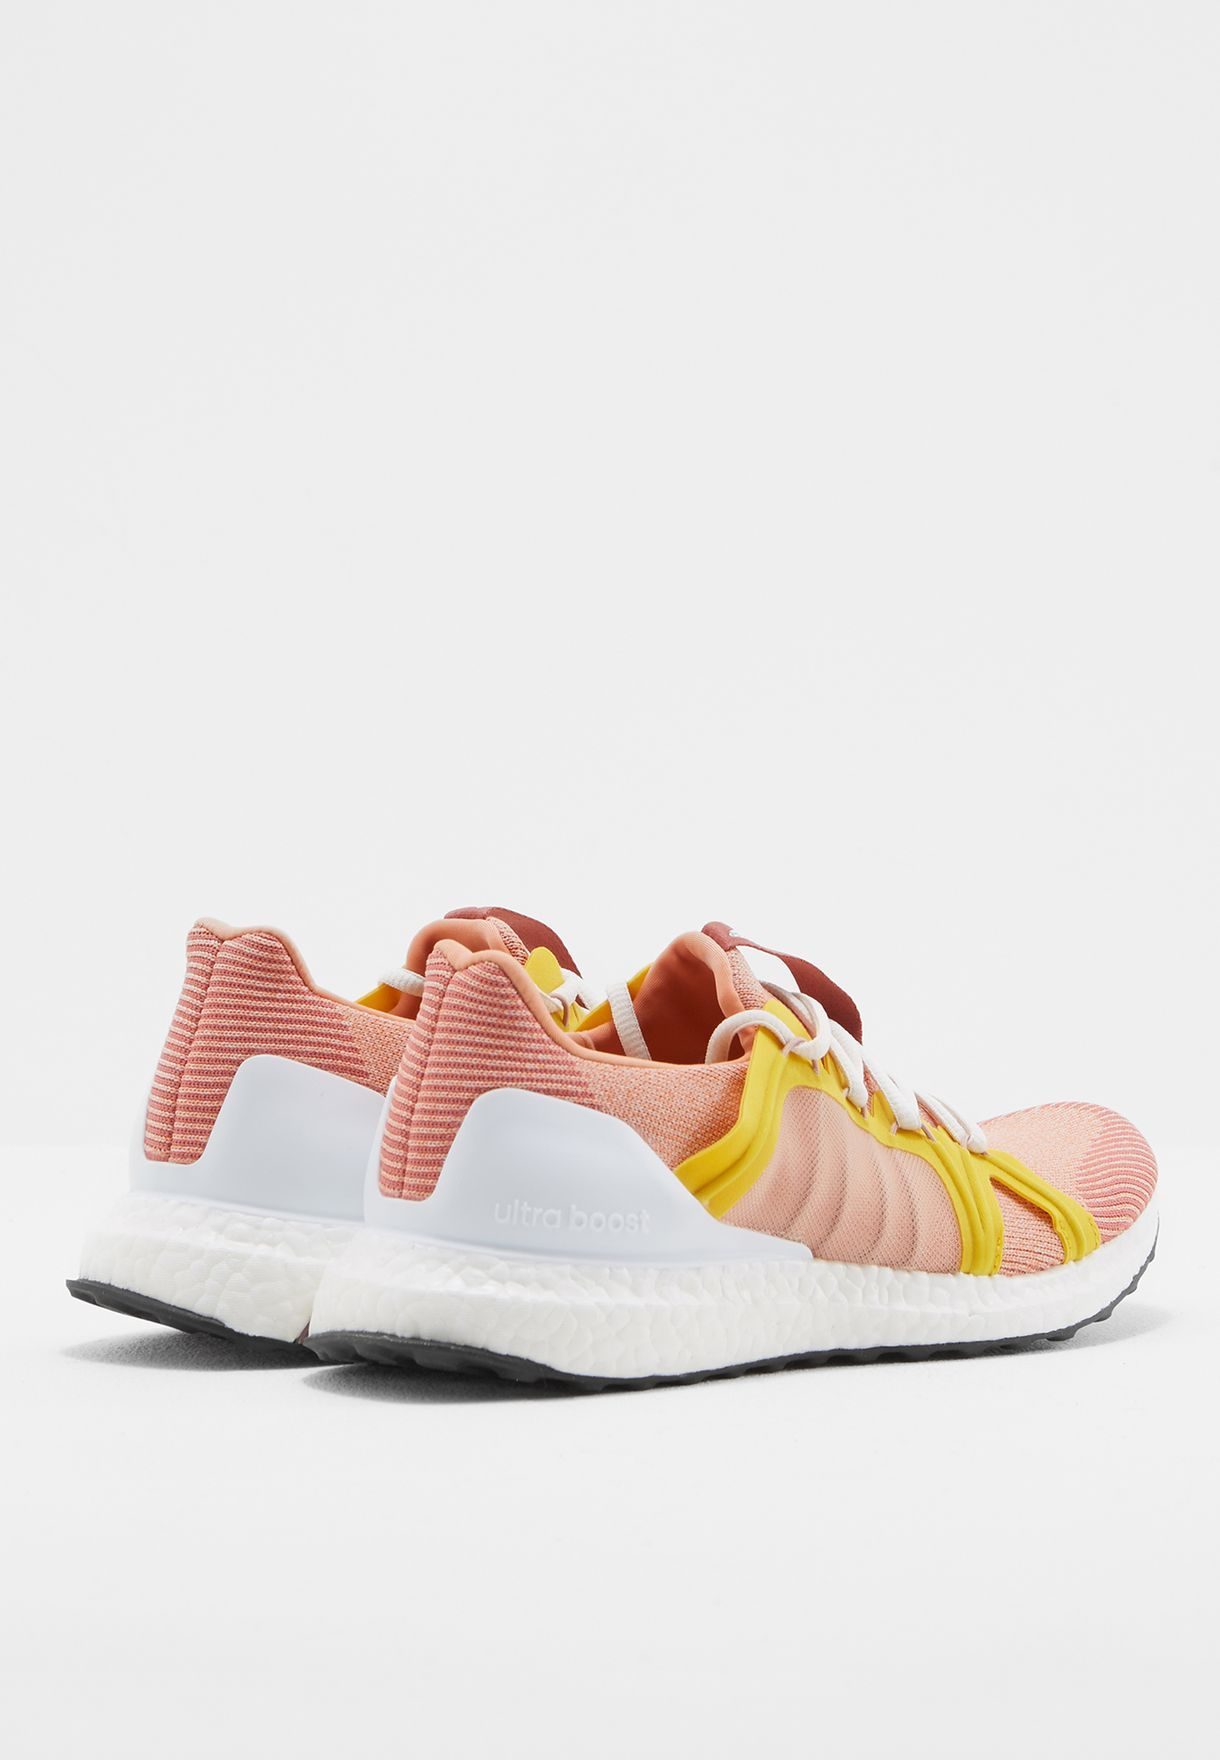 929cf5e03e101 Shop adidas by Stella McCartney multicolor Ultraboost CG3684 for ...